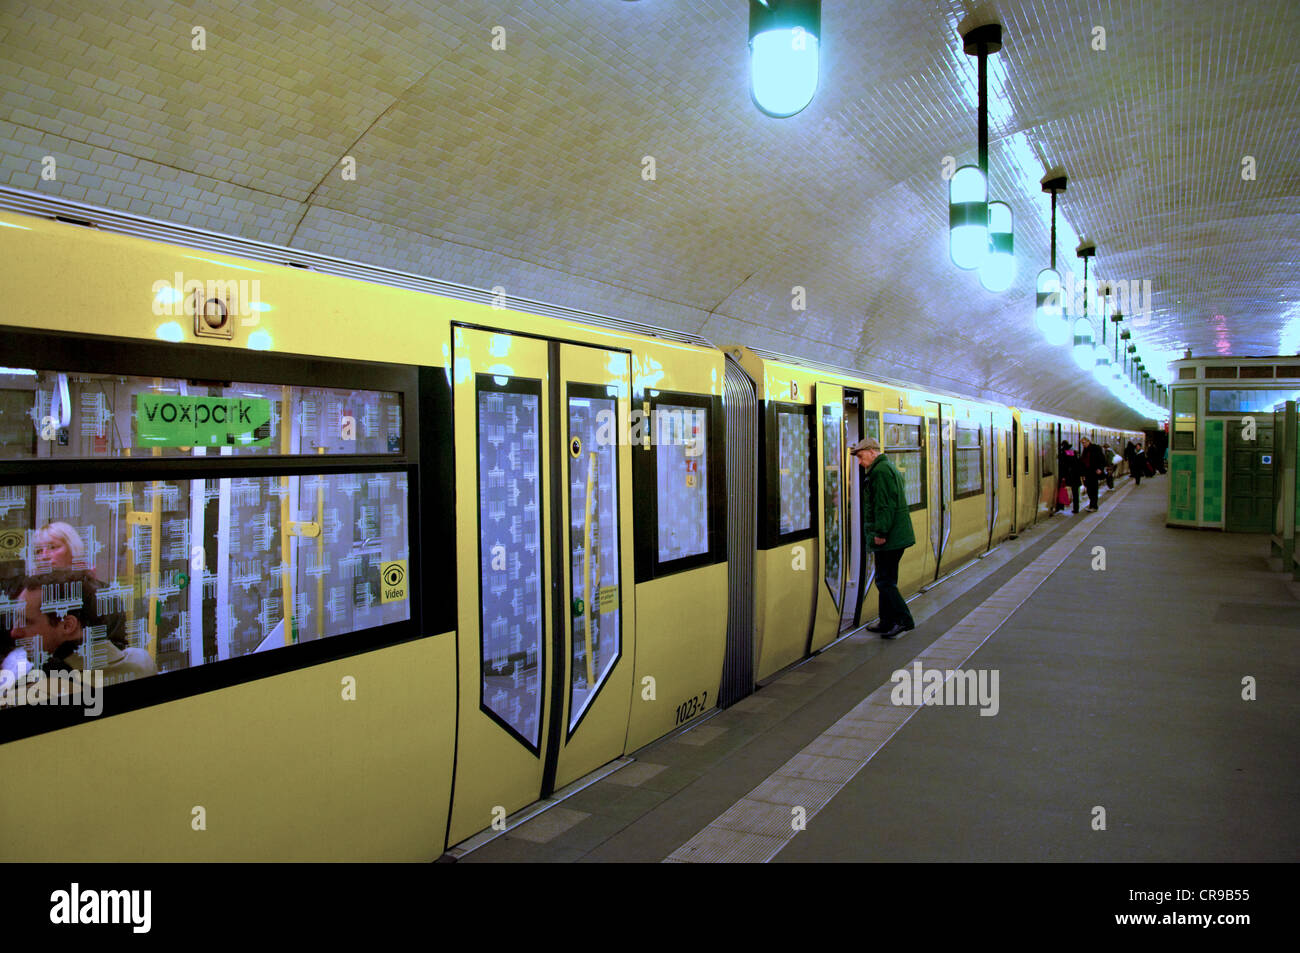 Berlin, Germany. U-Bahn (underground railway). Markisches Museum station - train at platform - Stock Image